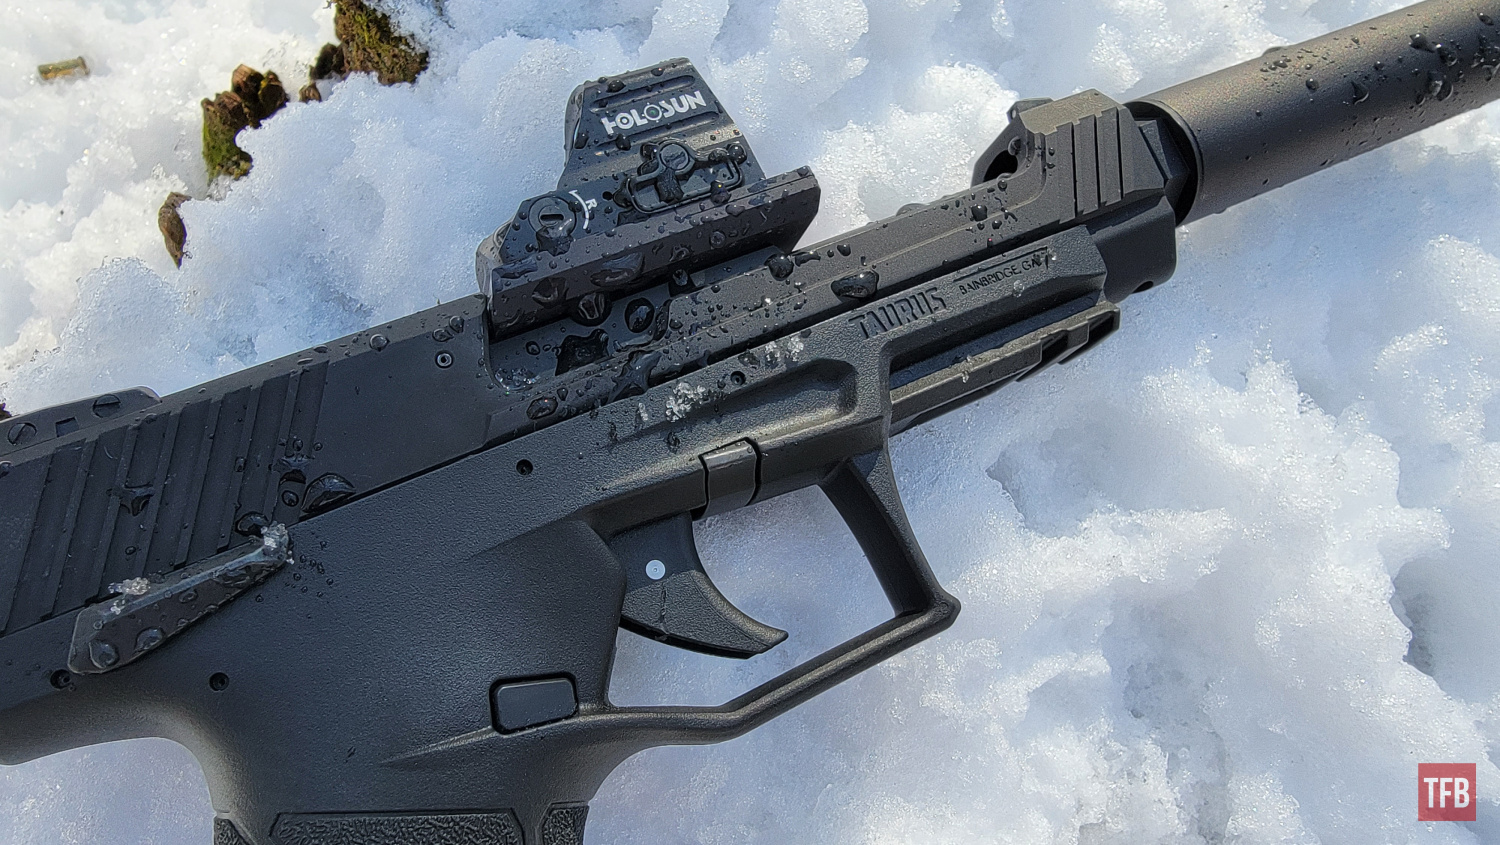 The Rimfire Report: The Taurus TX 22 Competition - Review